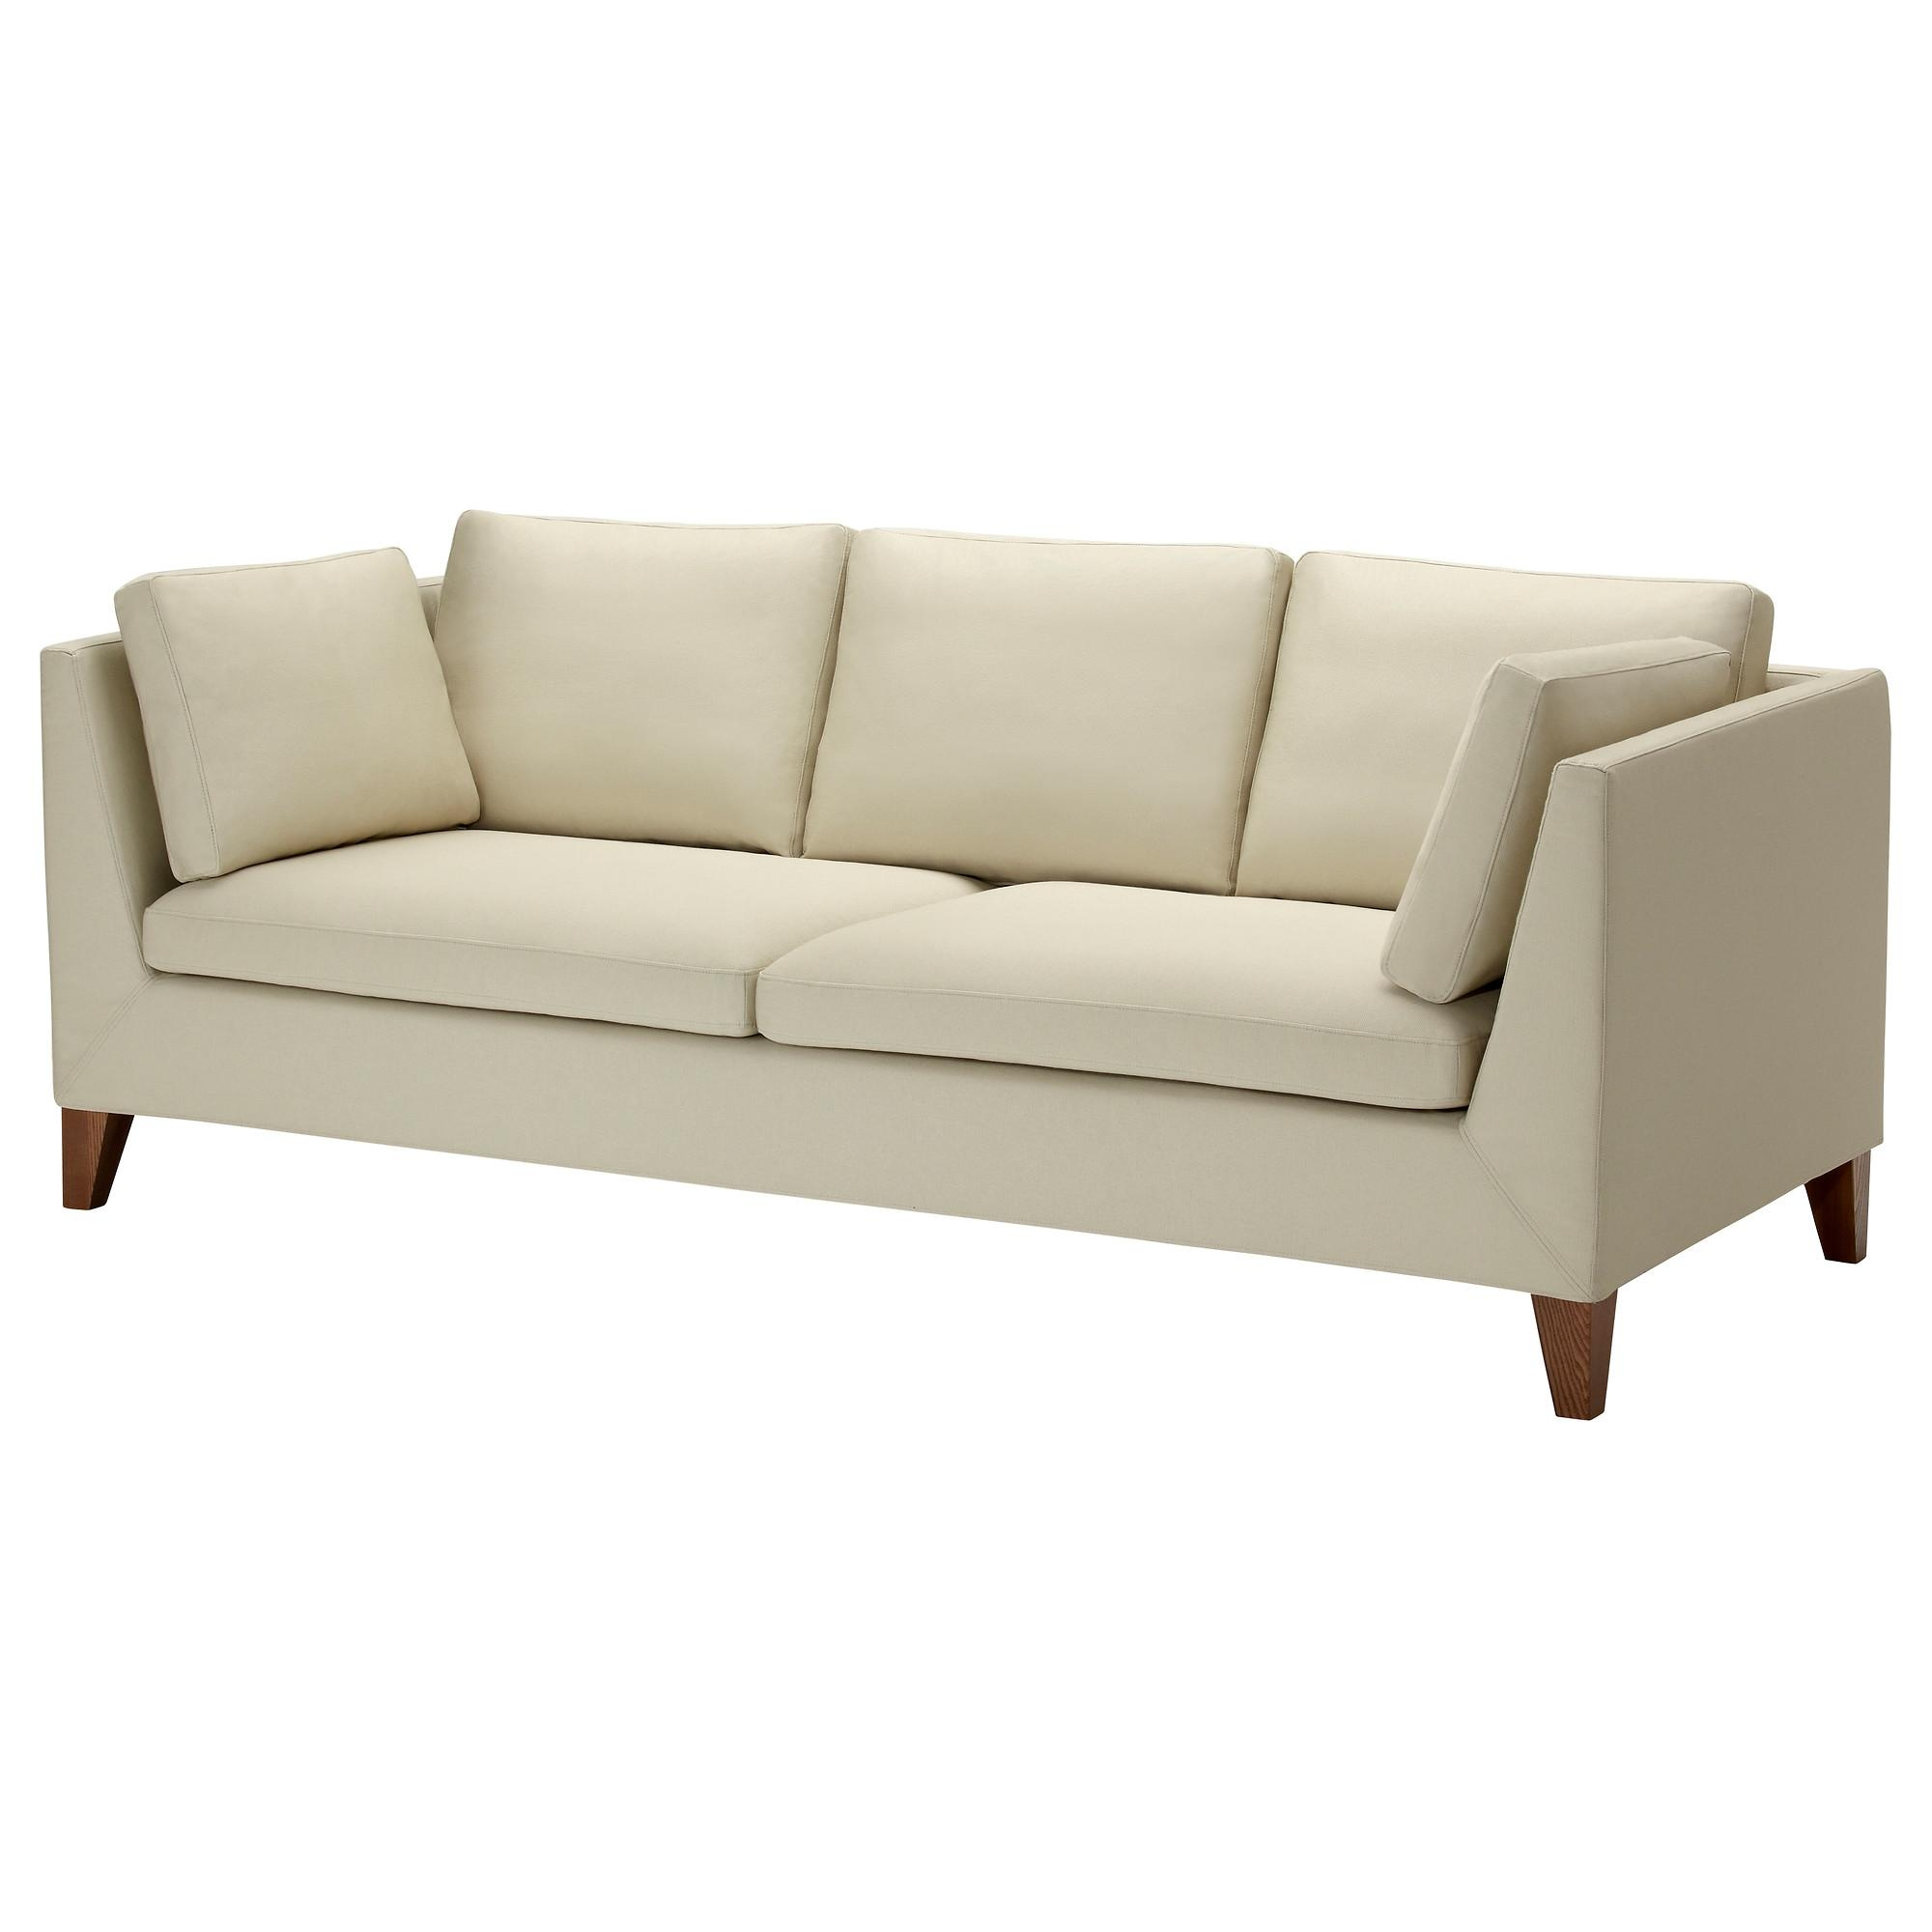 Narrow Depth Sofas Gracie Sofa Shallow Depth With Back In